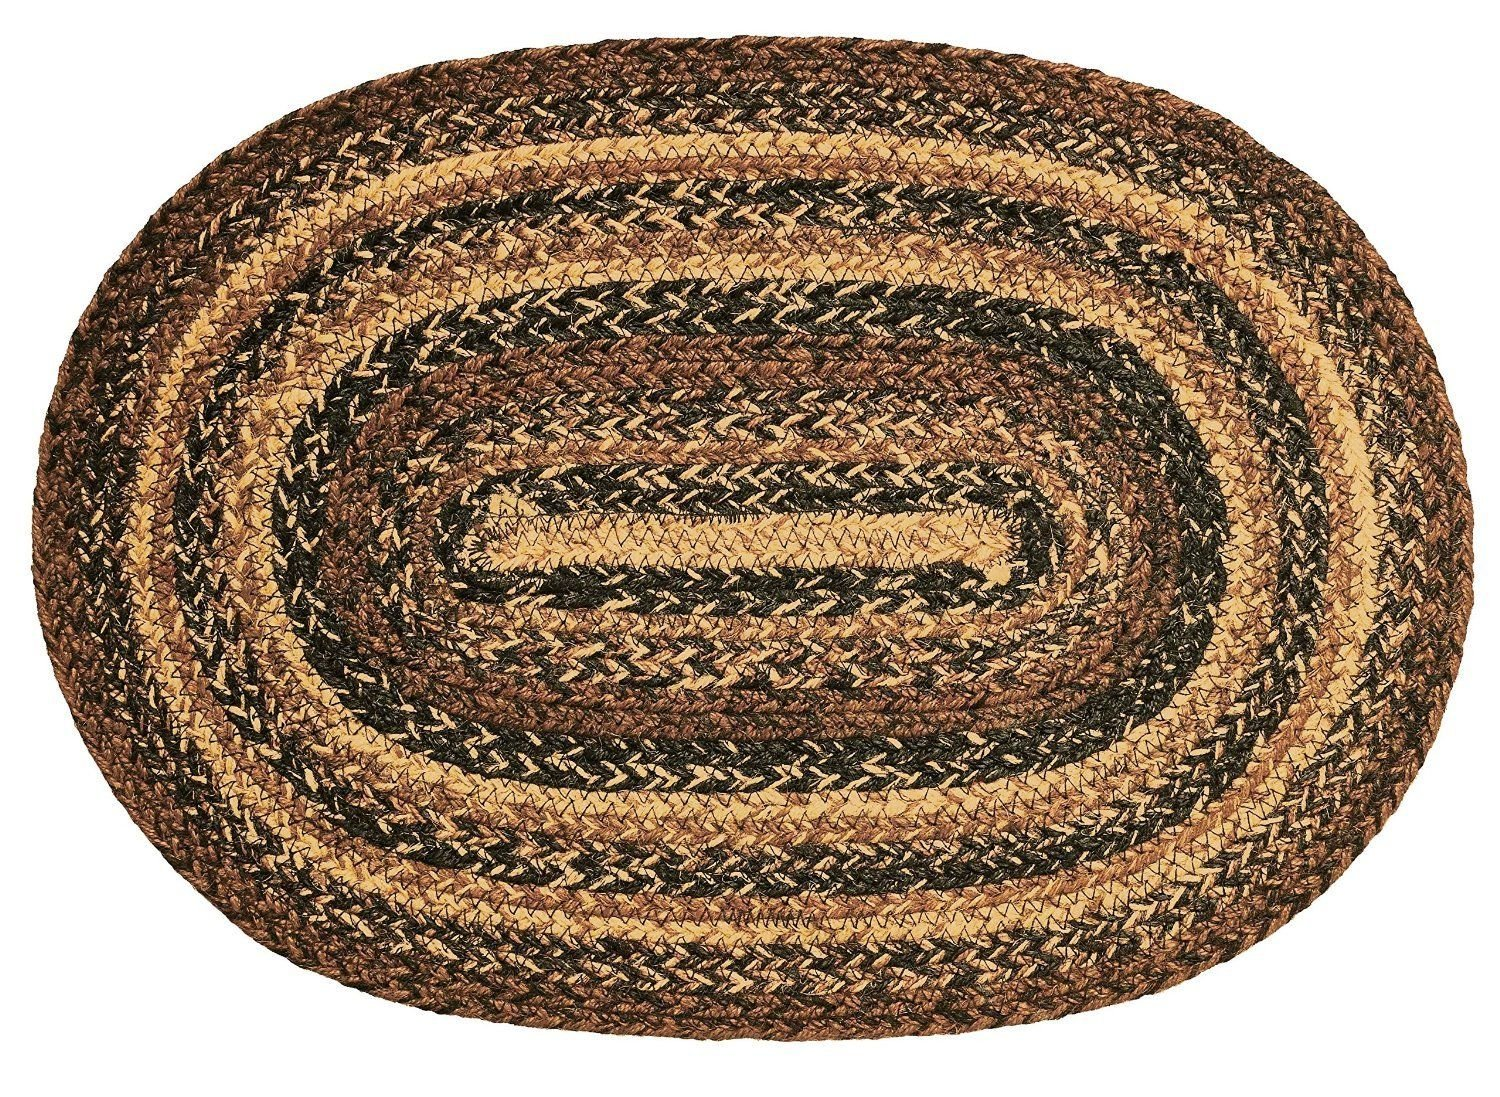 IHF Home Decor Oval Floor Carpet Braided Rug 20'' x 30'' Cappuccino Design Jute Fabric